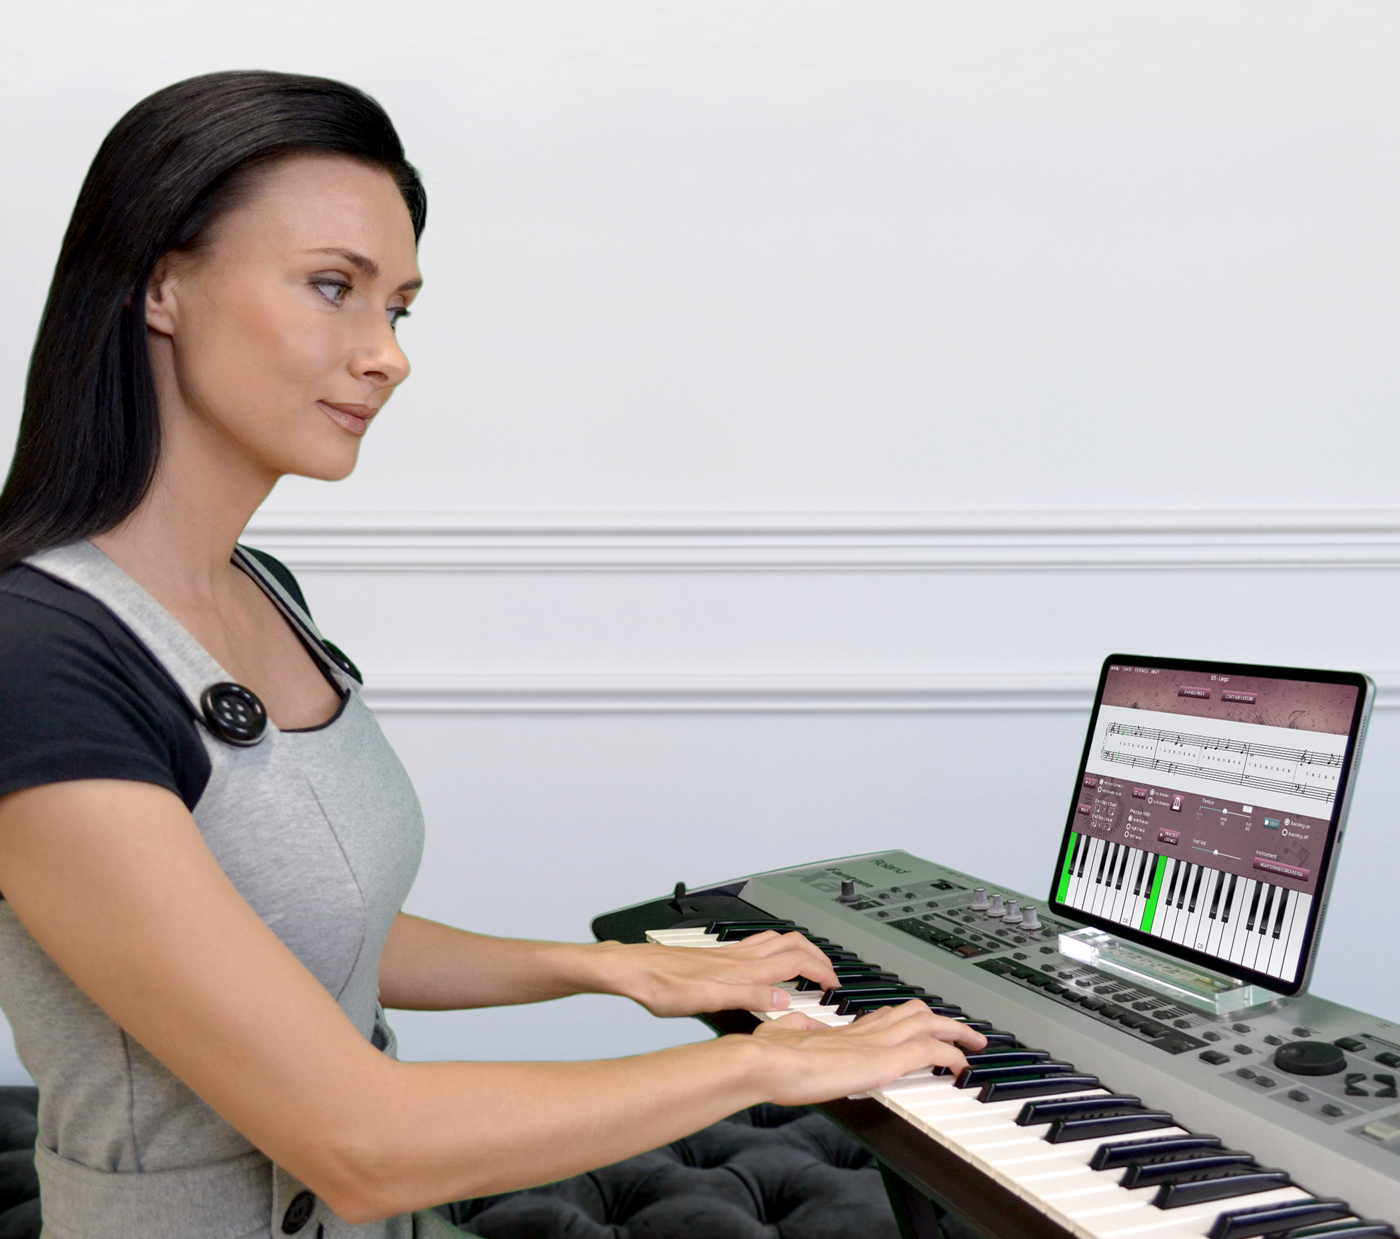 A.I. piano lessons for iPad in action